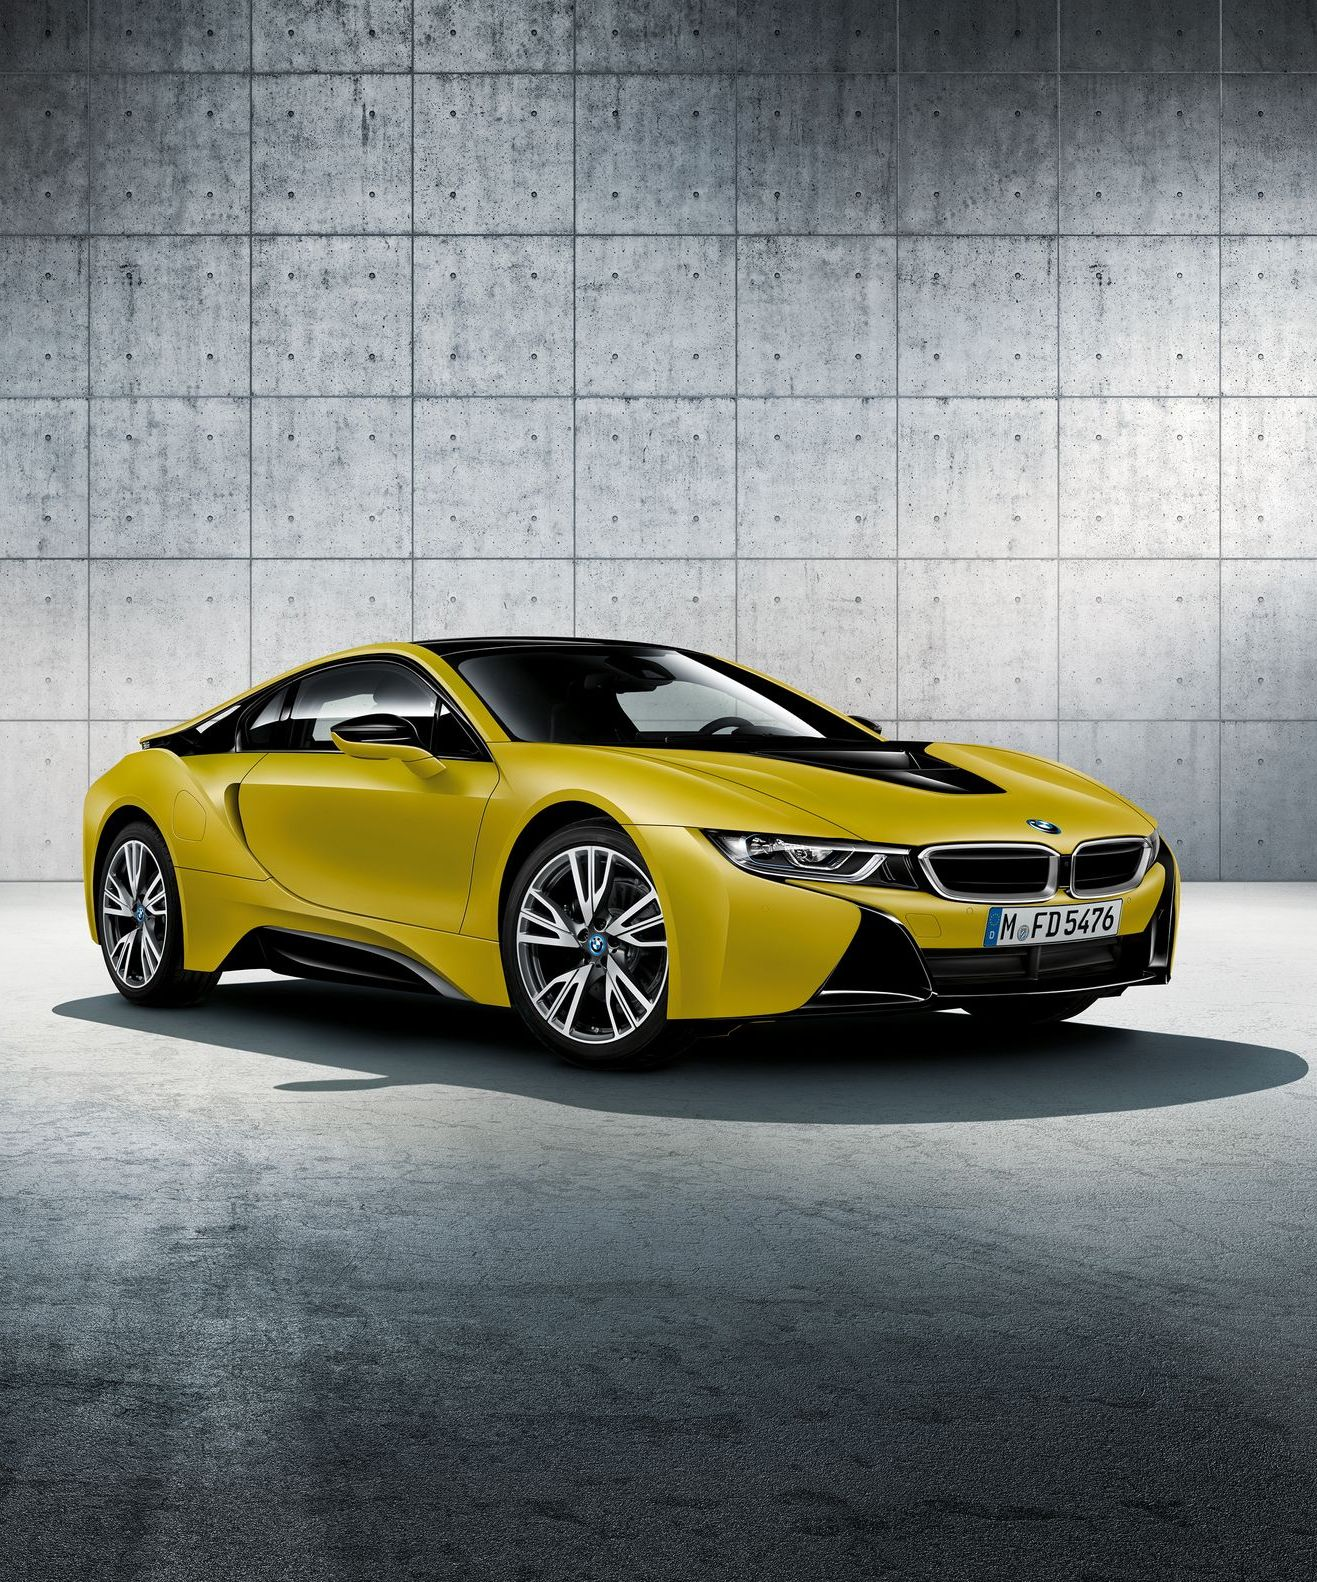 Bmw I8 Protonic Frozen Edition - The MAN